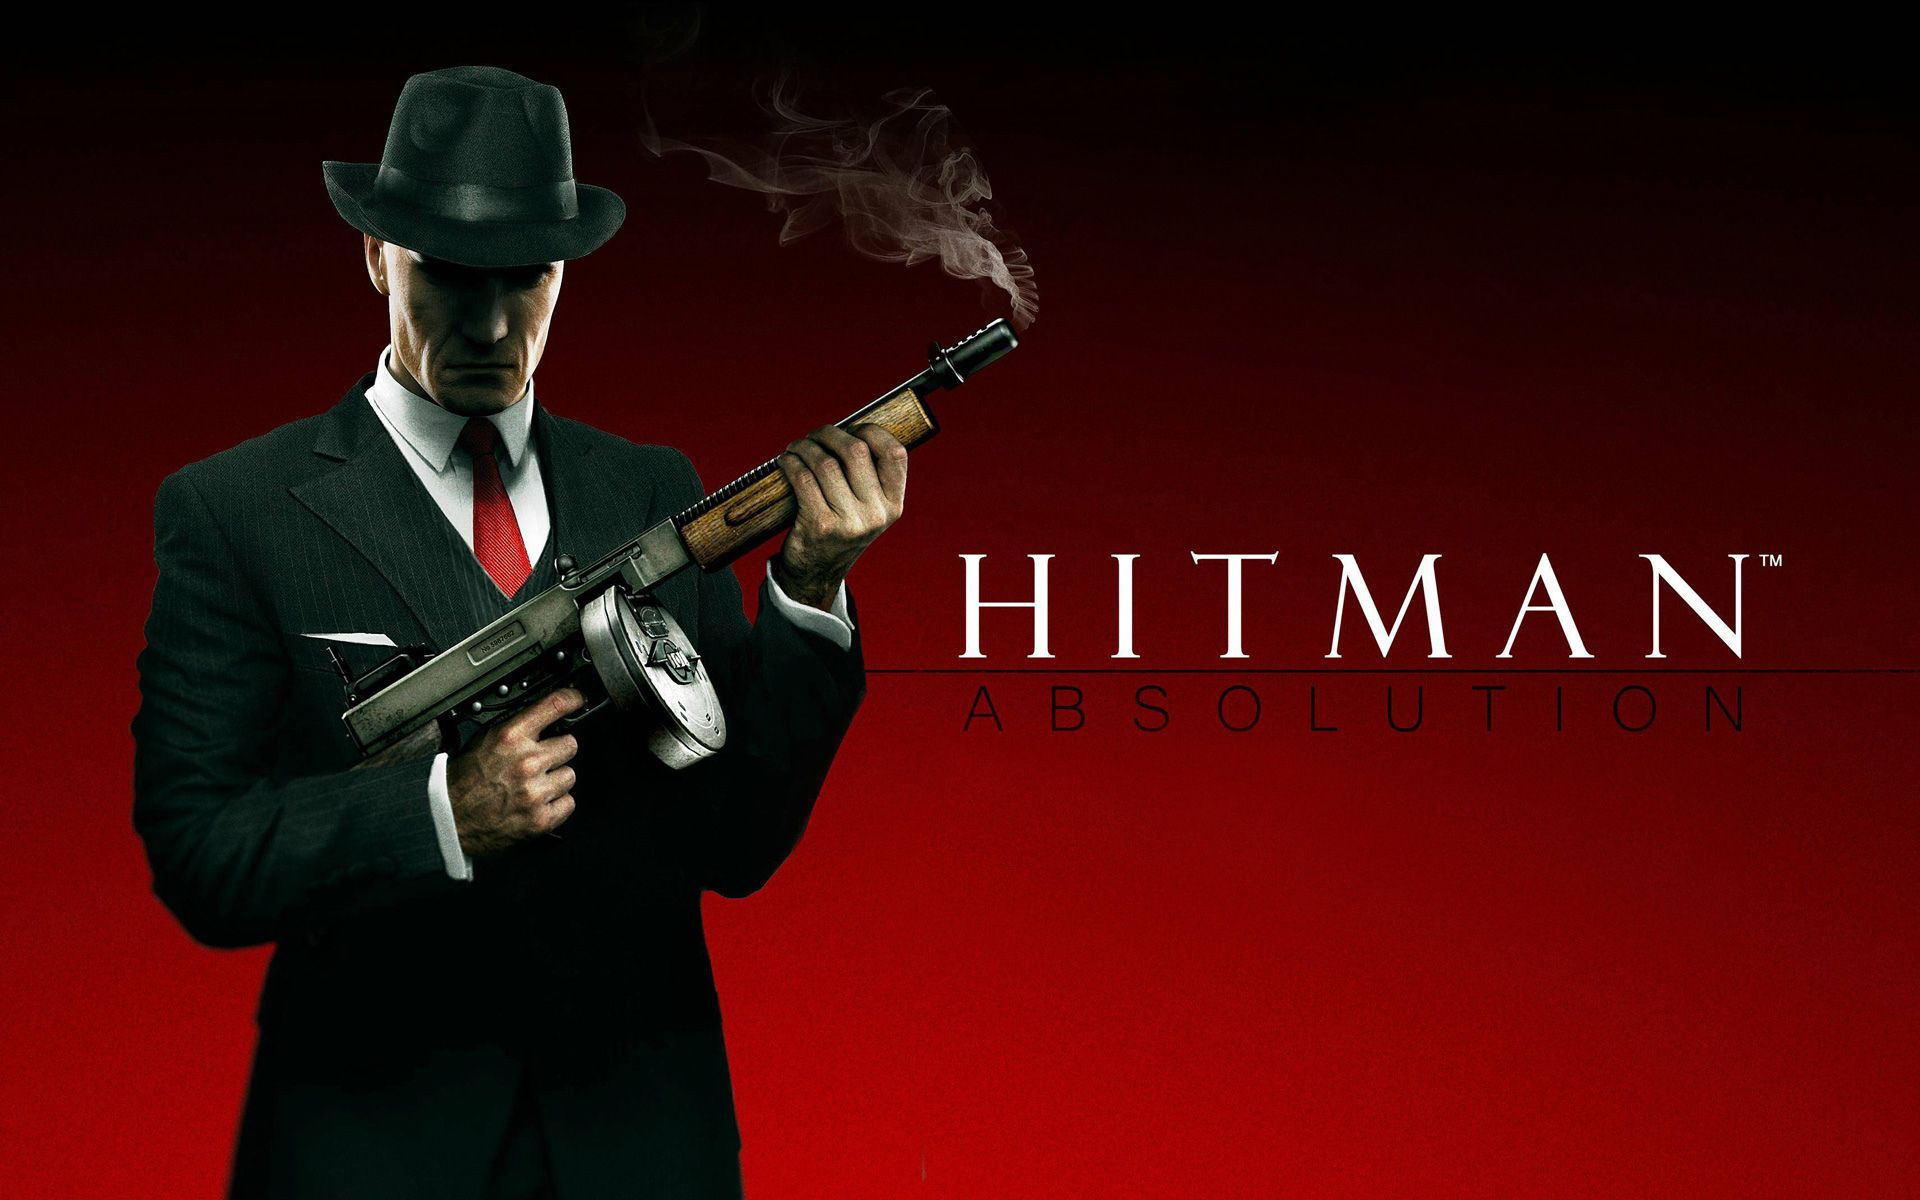 hitman absolution wallpaper desktop #t9p | awesomeness | pinterest